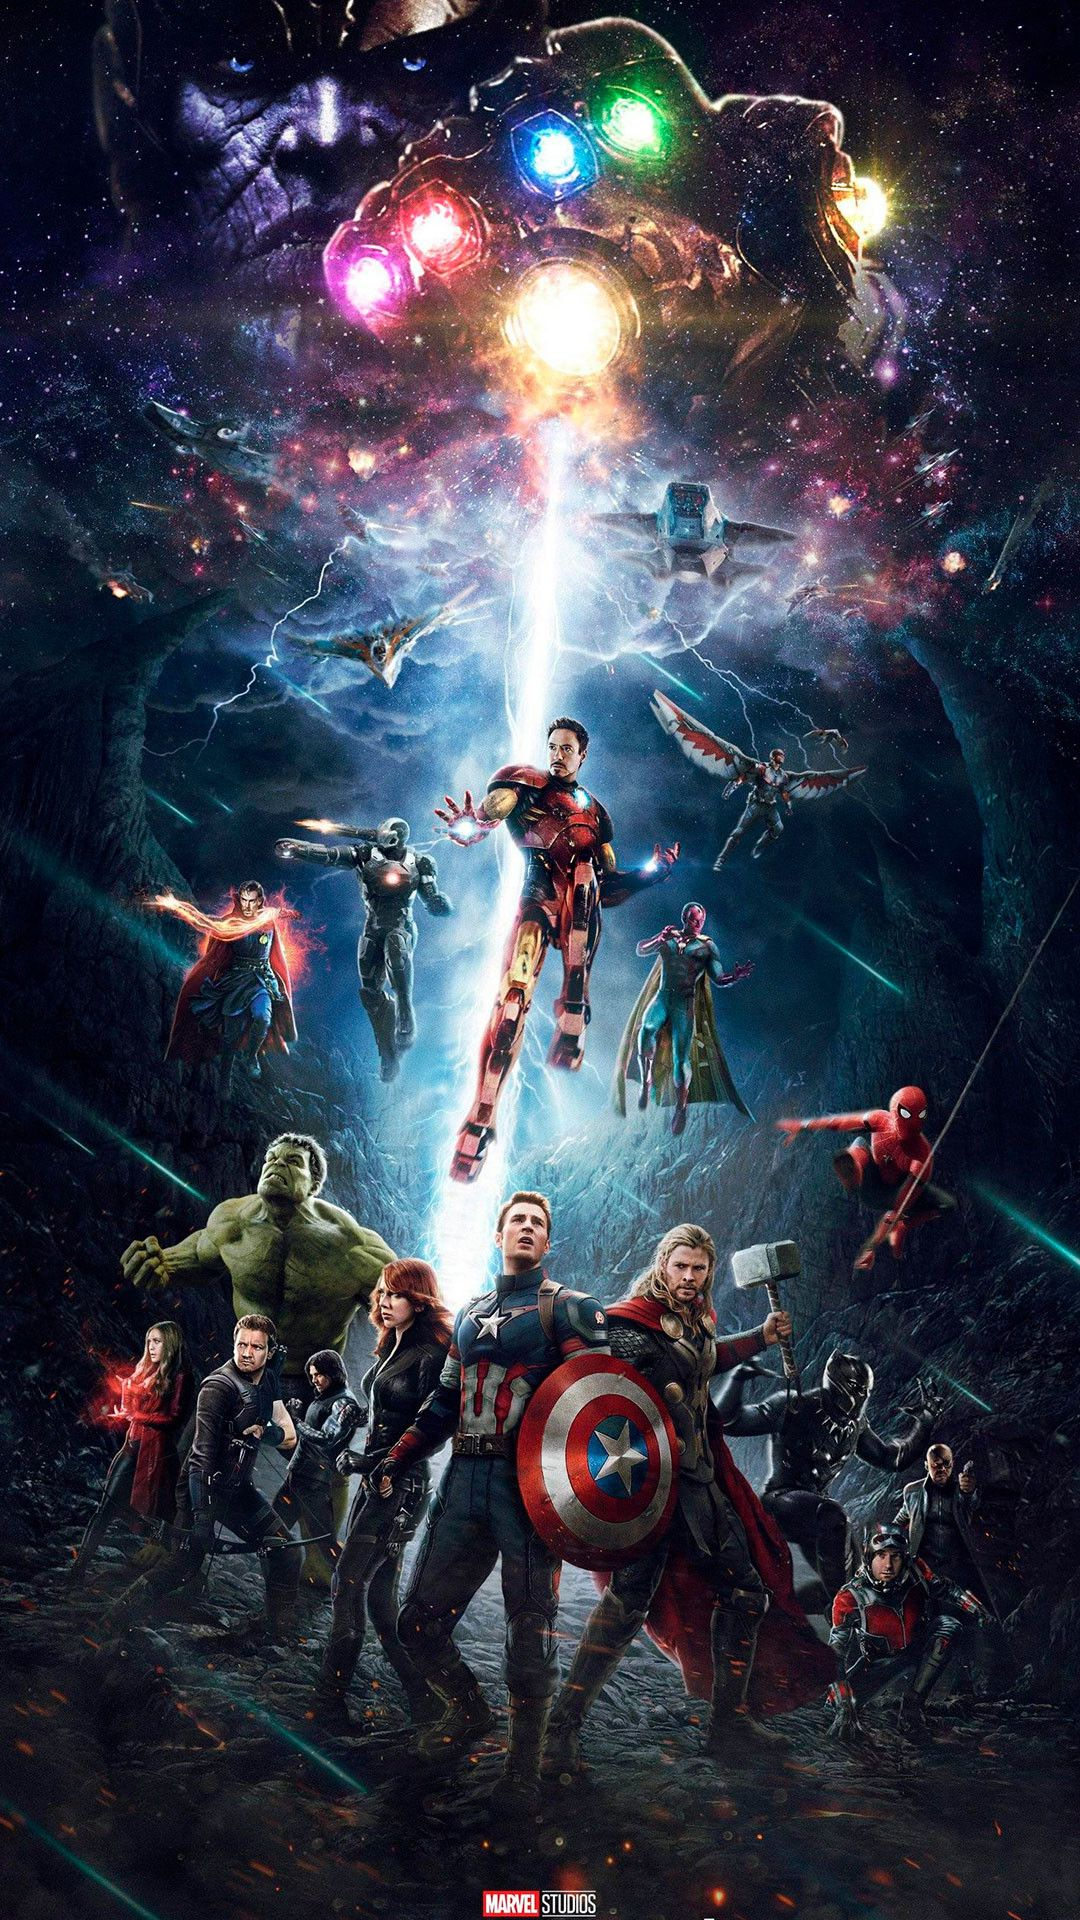 iPhone XS wallpapers : avengers - Wallpaper Magazine - Your daily...